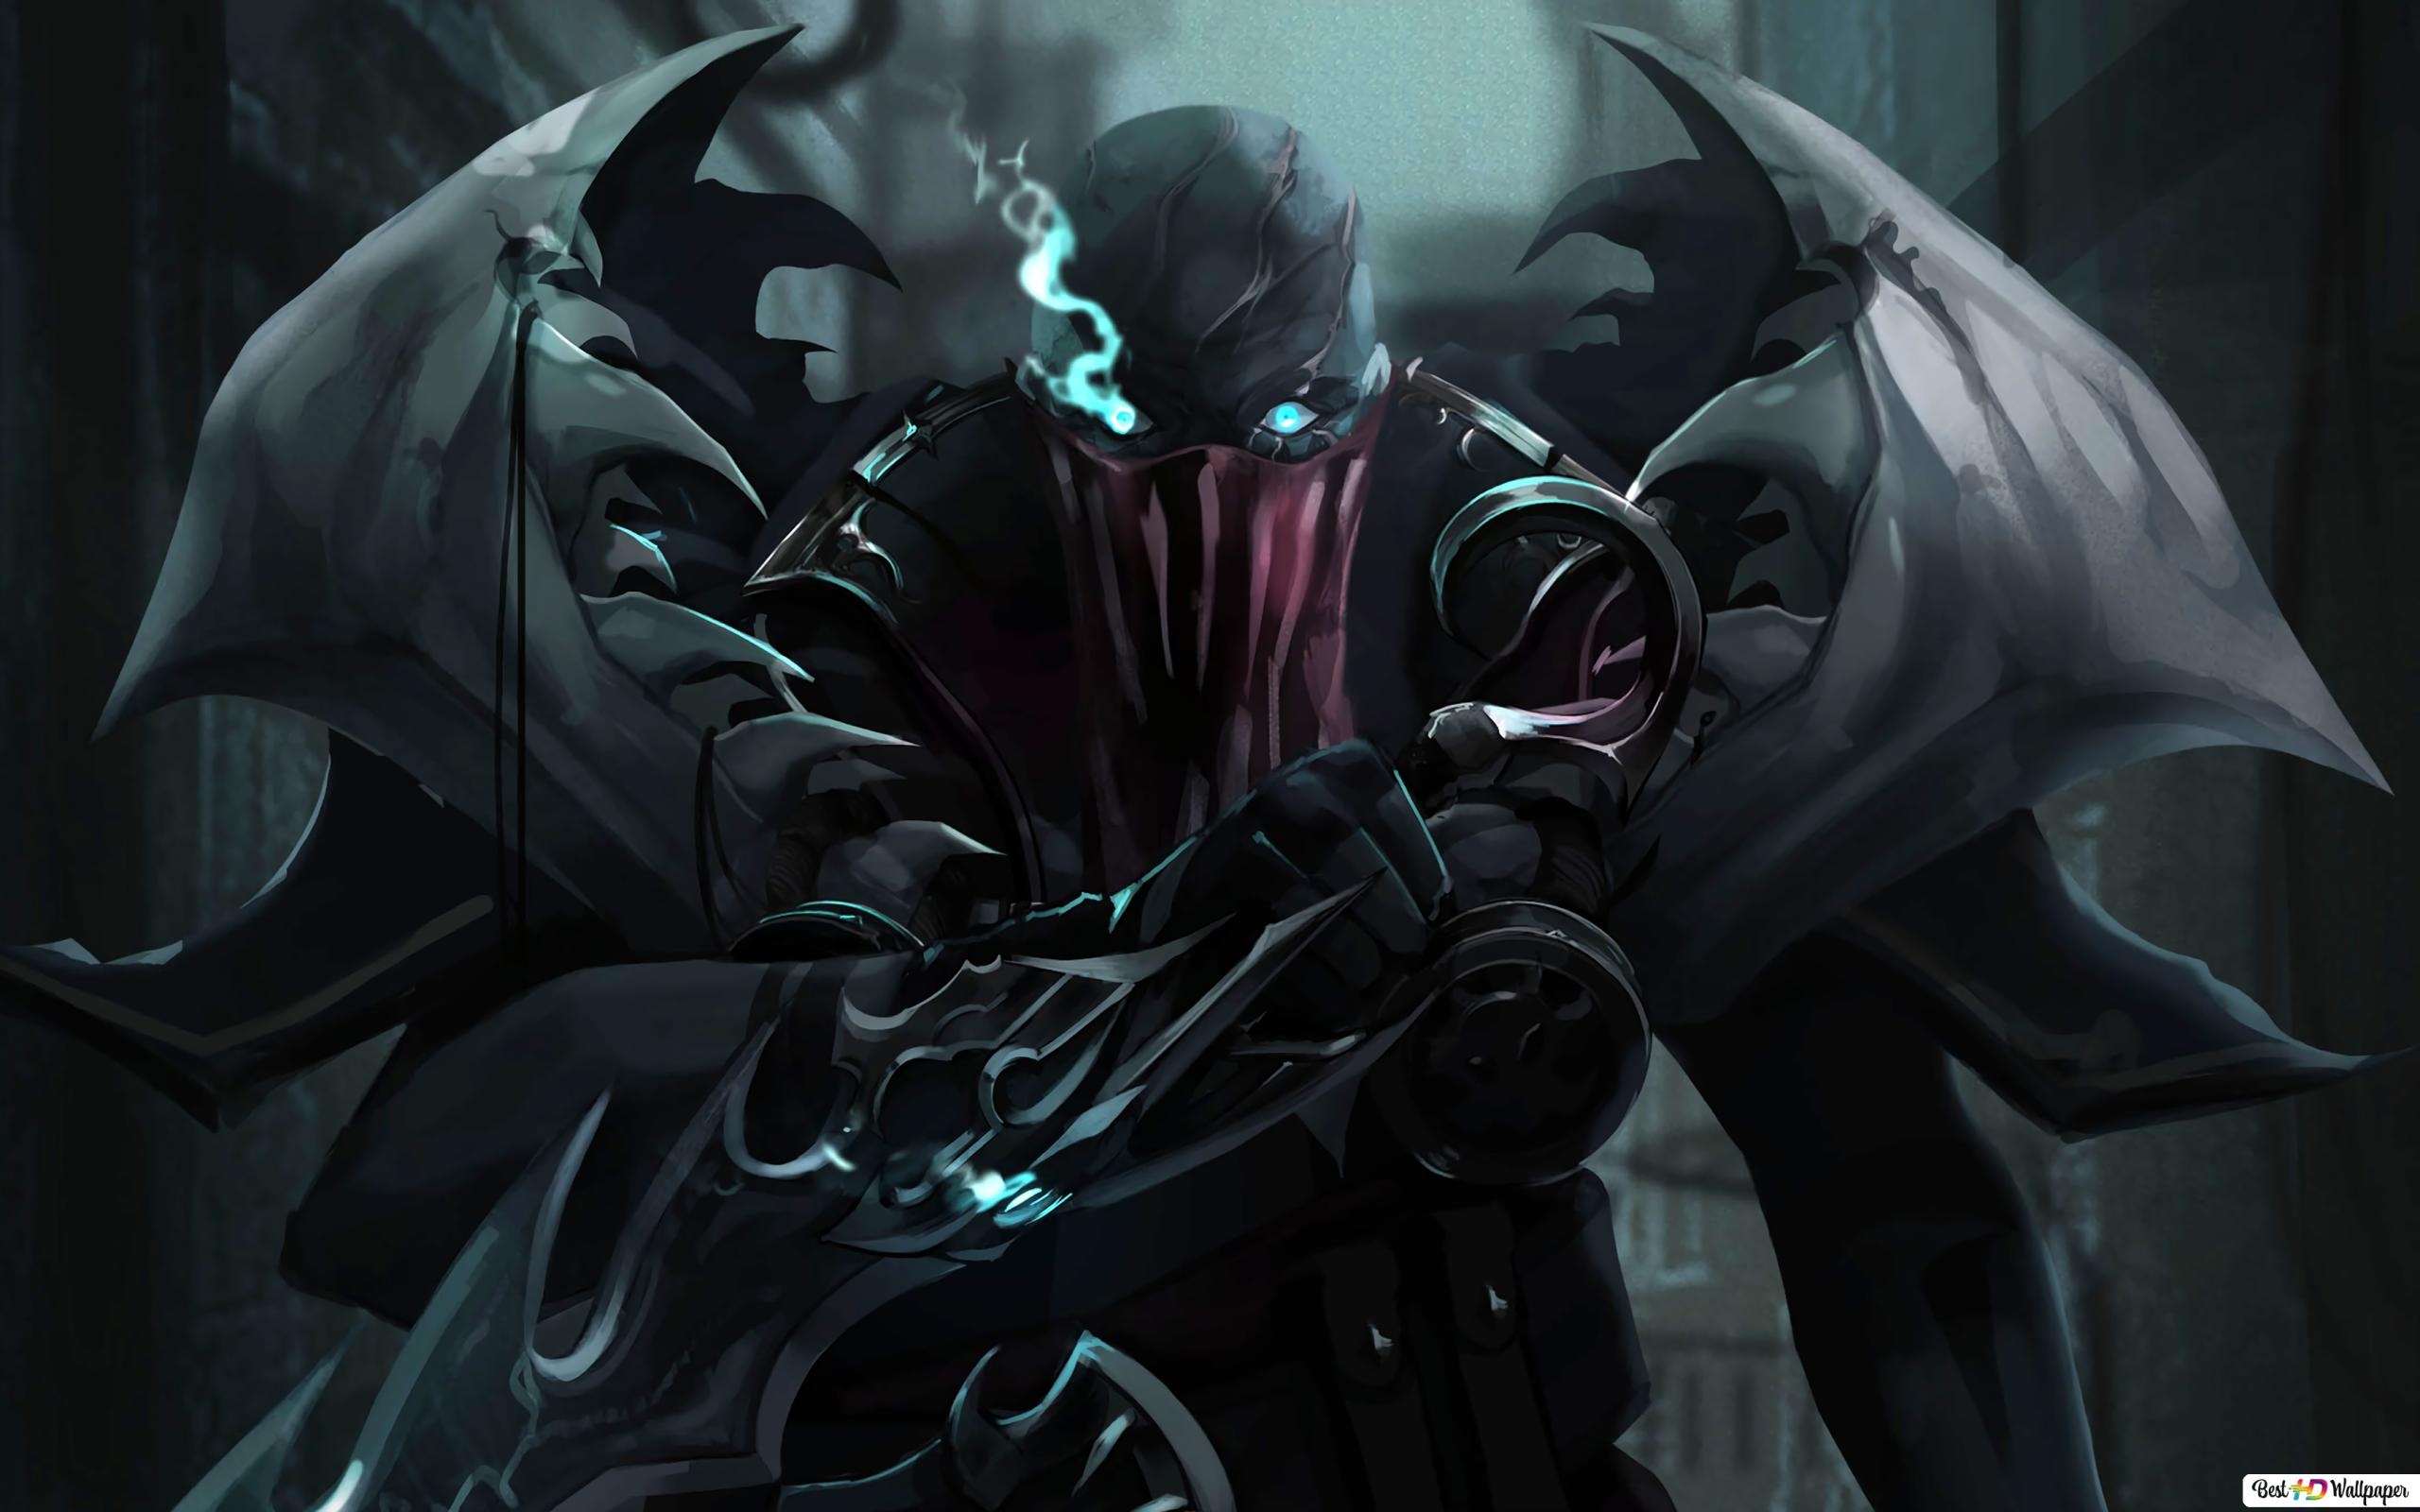 Dual Monitor Wallpaper League Of Legends: League Of Legends: Pyke HD Wallpaper Download